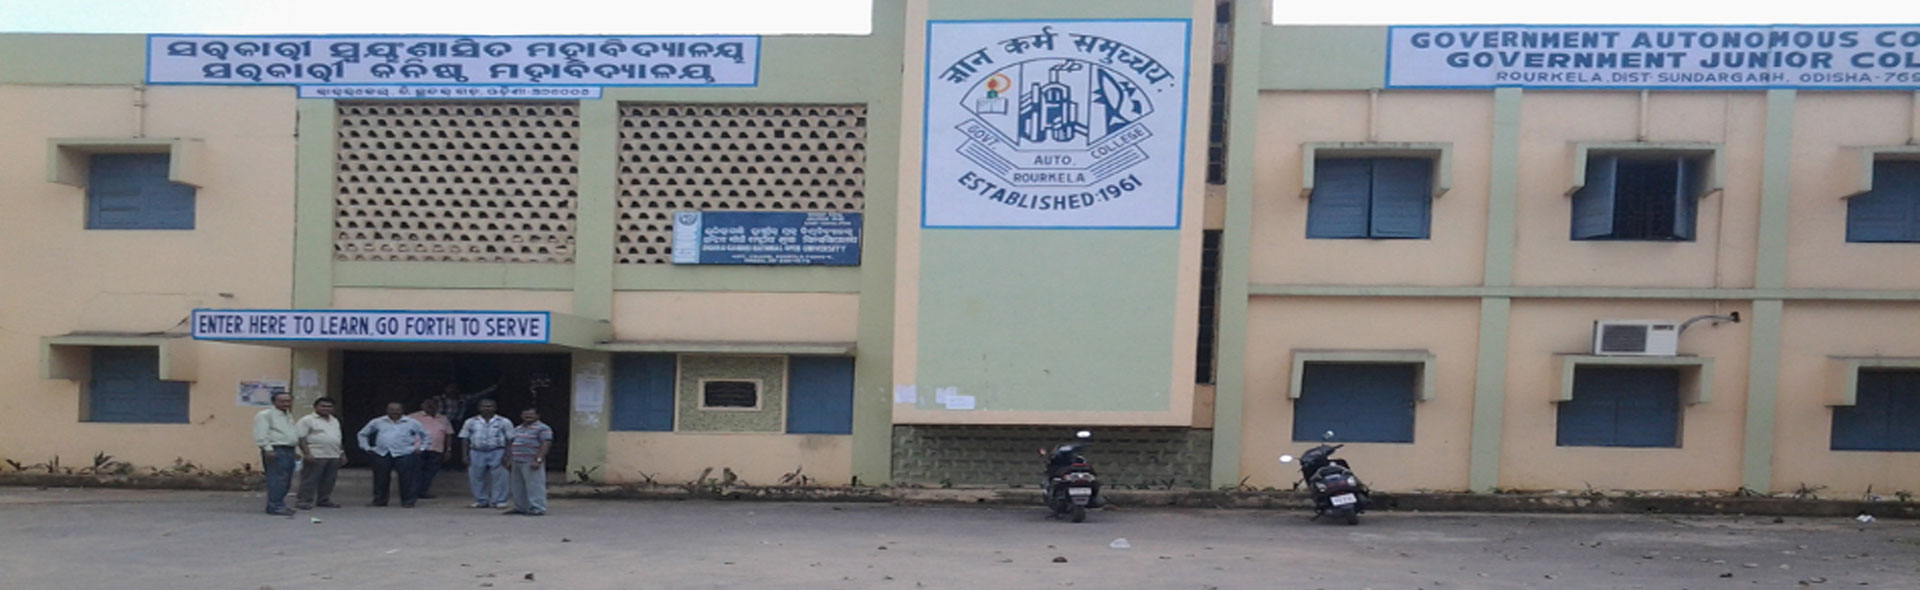 Government Autonomous College, Rourkela :: Government